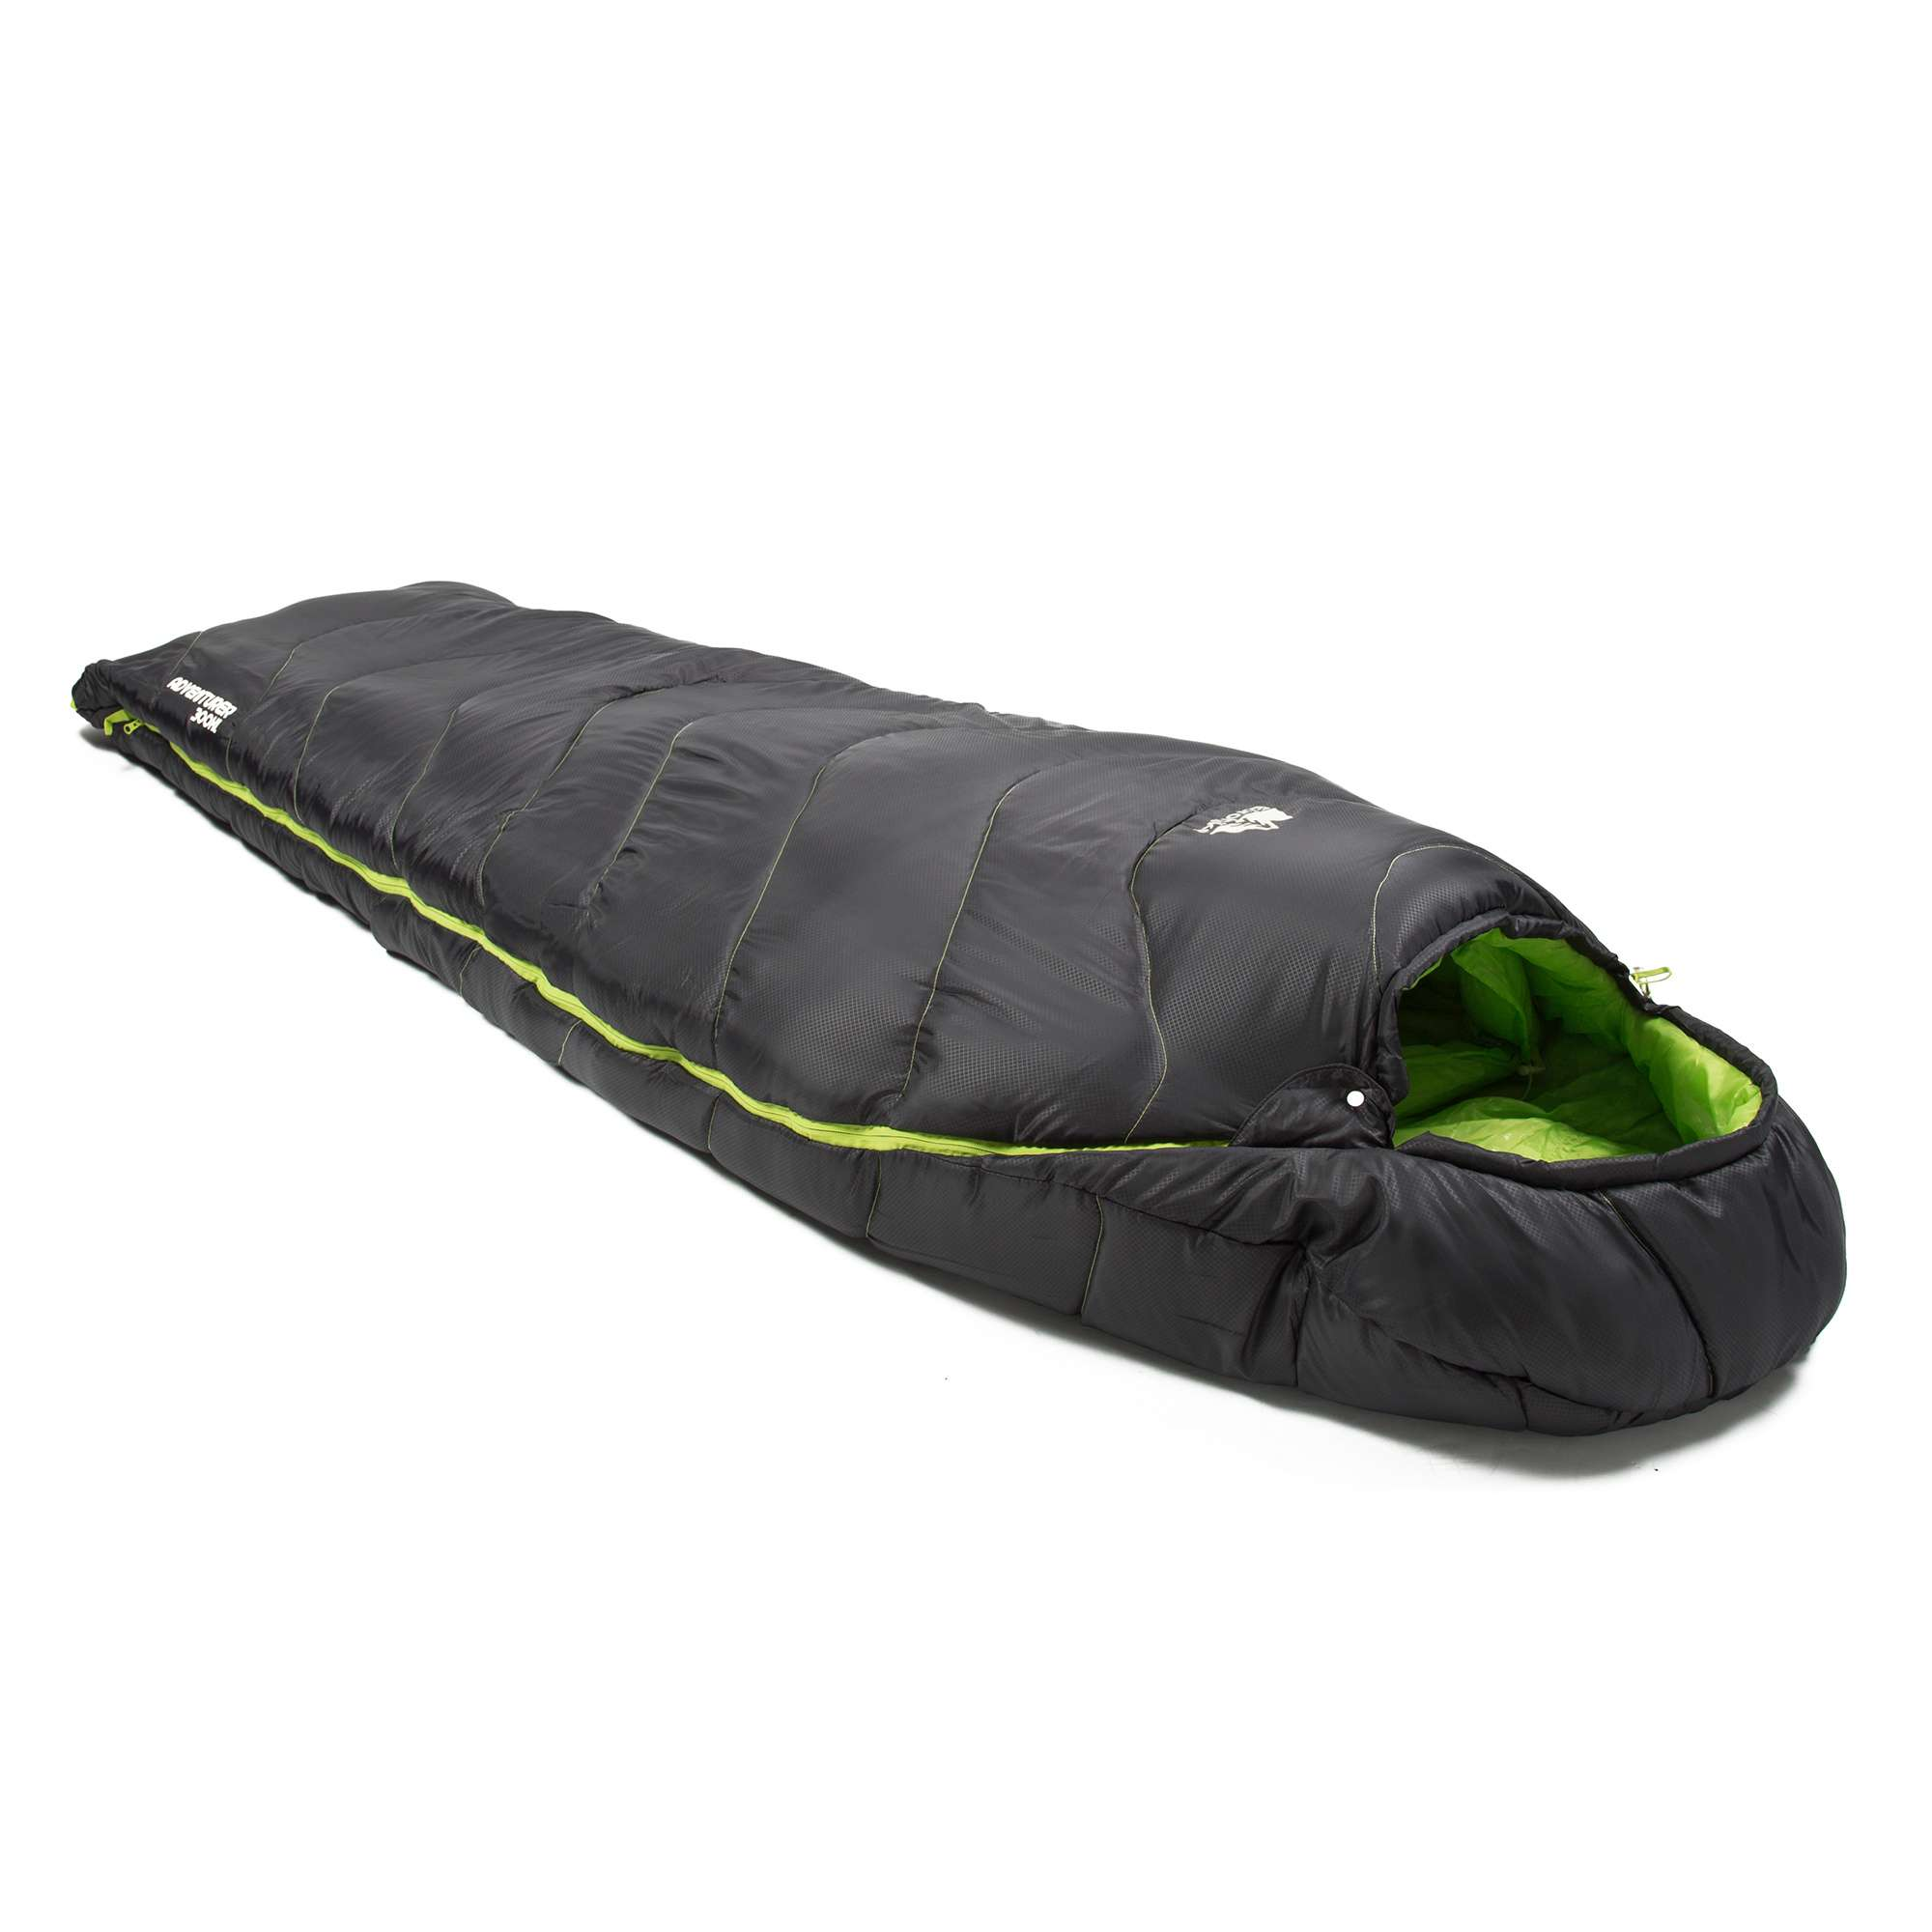 EUROHIKE Adventurer 300XL Sleeping Bag